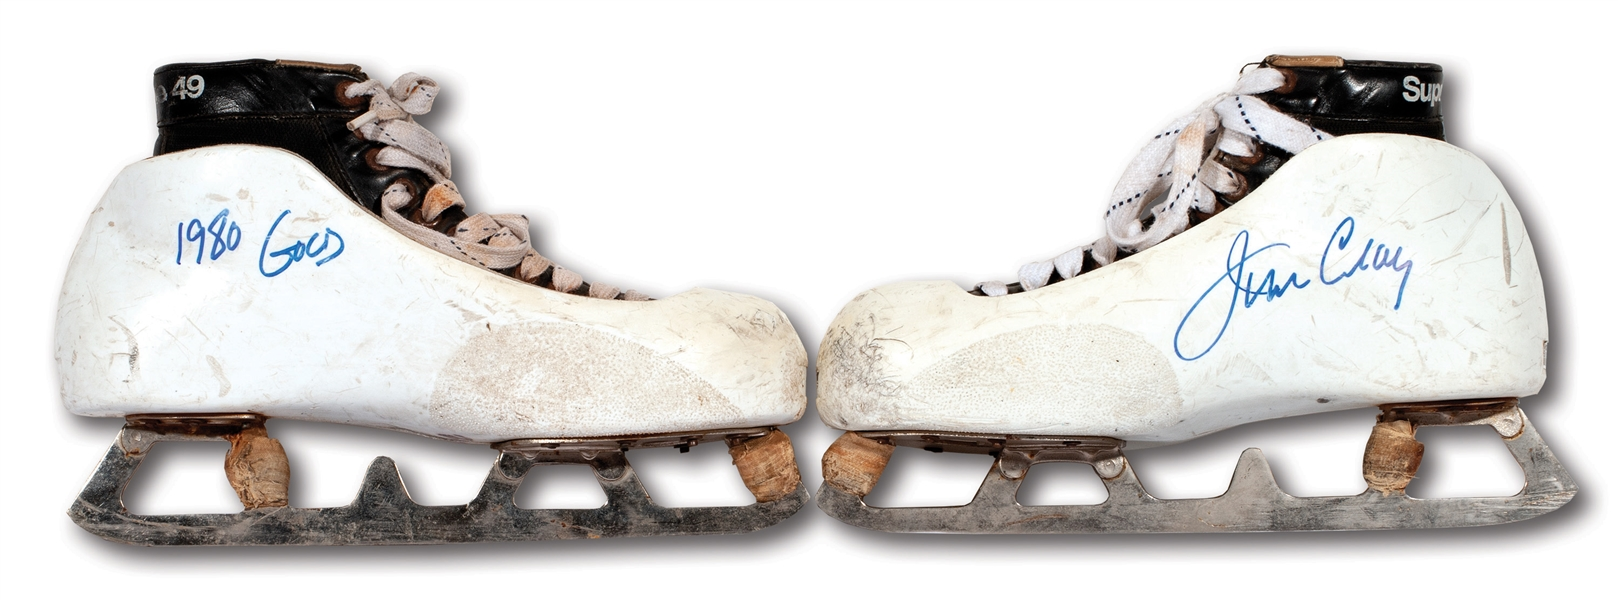 "JIM CRAIGS SIGNED & INSCRIBED 1980 OLYMPICS ""MIRACLE ON ICE"" GOALIE SKATES WORN EVERY GAME OF USAS EPIC GOLD MEDAL RUN IN LAKE PLACID (CRAIG LOA)"